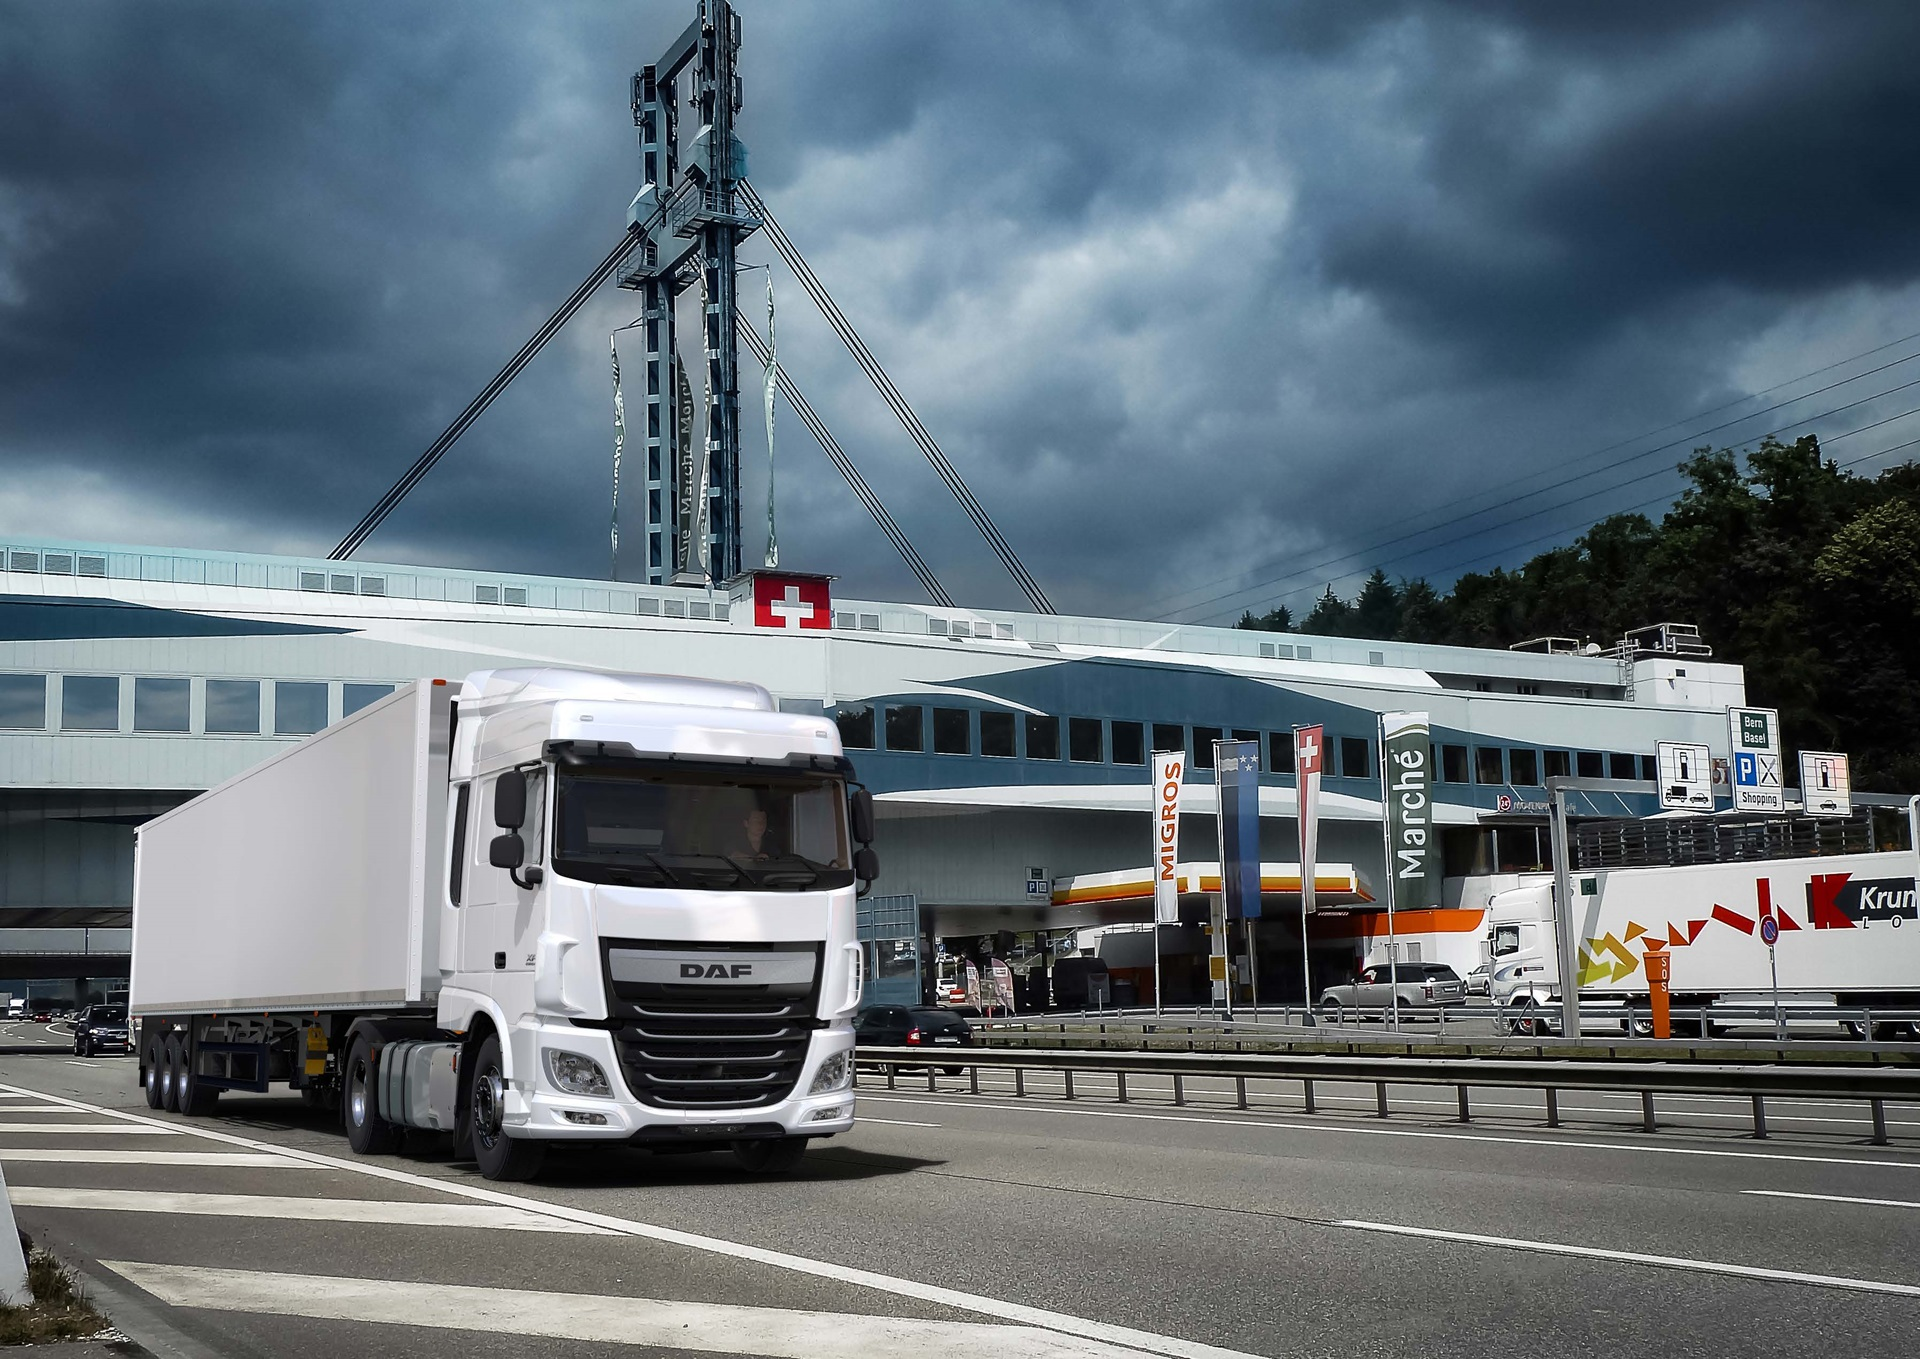 DAF-first-choice-the-best-choice